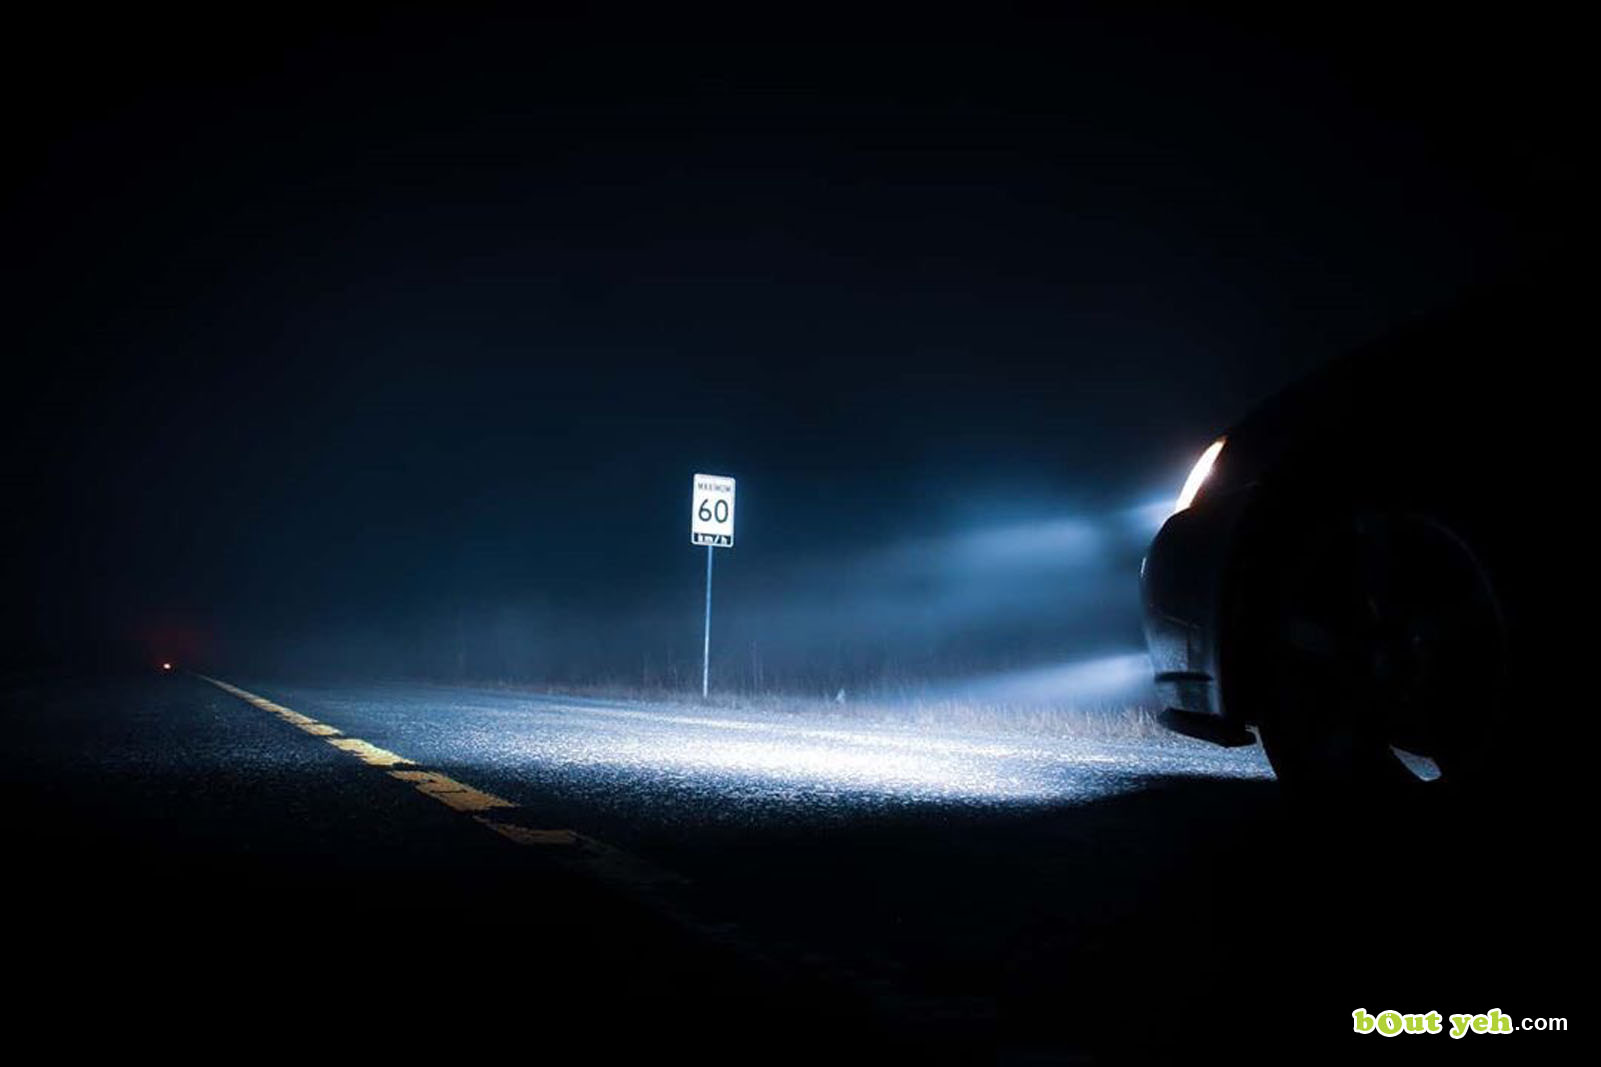 Photograph of road speed sign in car headlights at night by Robert McLaughlin - photo 5895 shared by Bout Yeh photographers Belfast